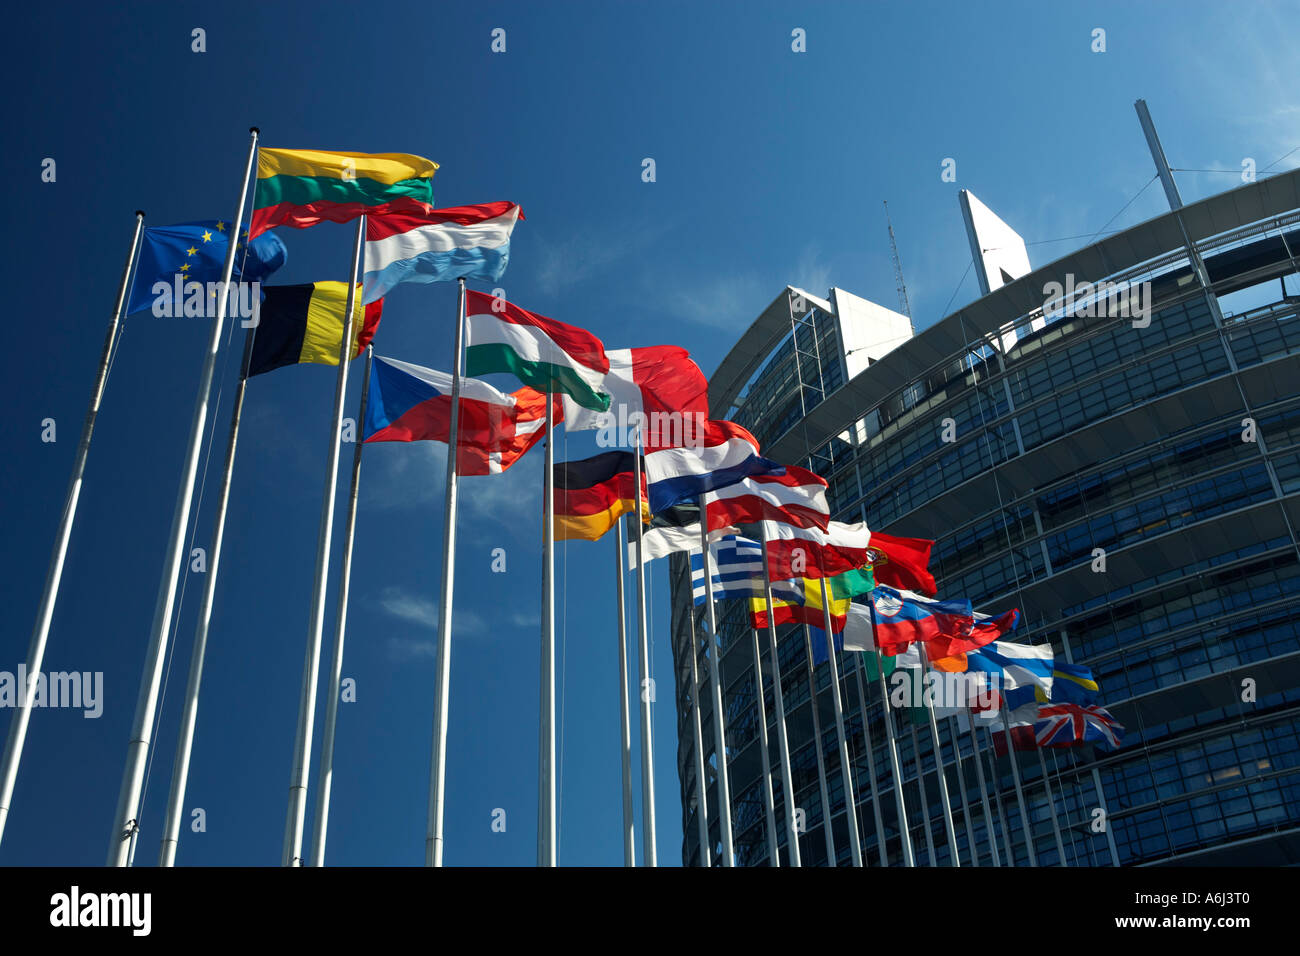 Flag poles with flags of the European Union countries blow before the building of the European parliament in Strasbourg, France - Stock Image